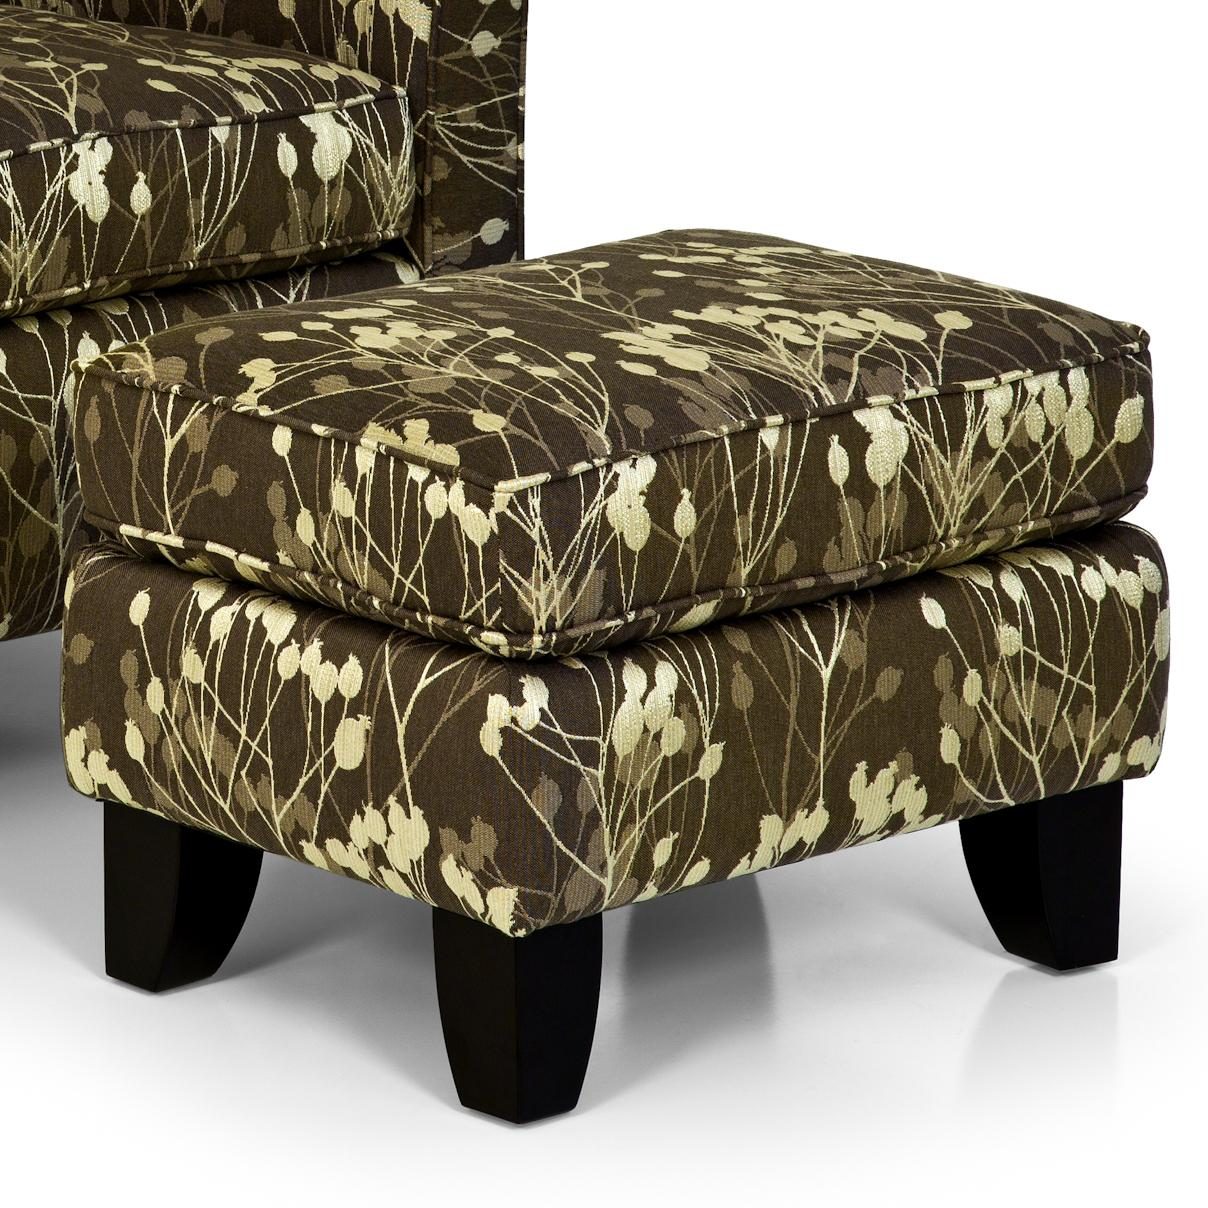 Stanton Accent Chairs And Ottomans Ottoman   Item Number: 958 08